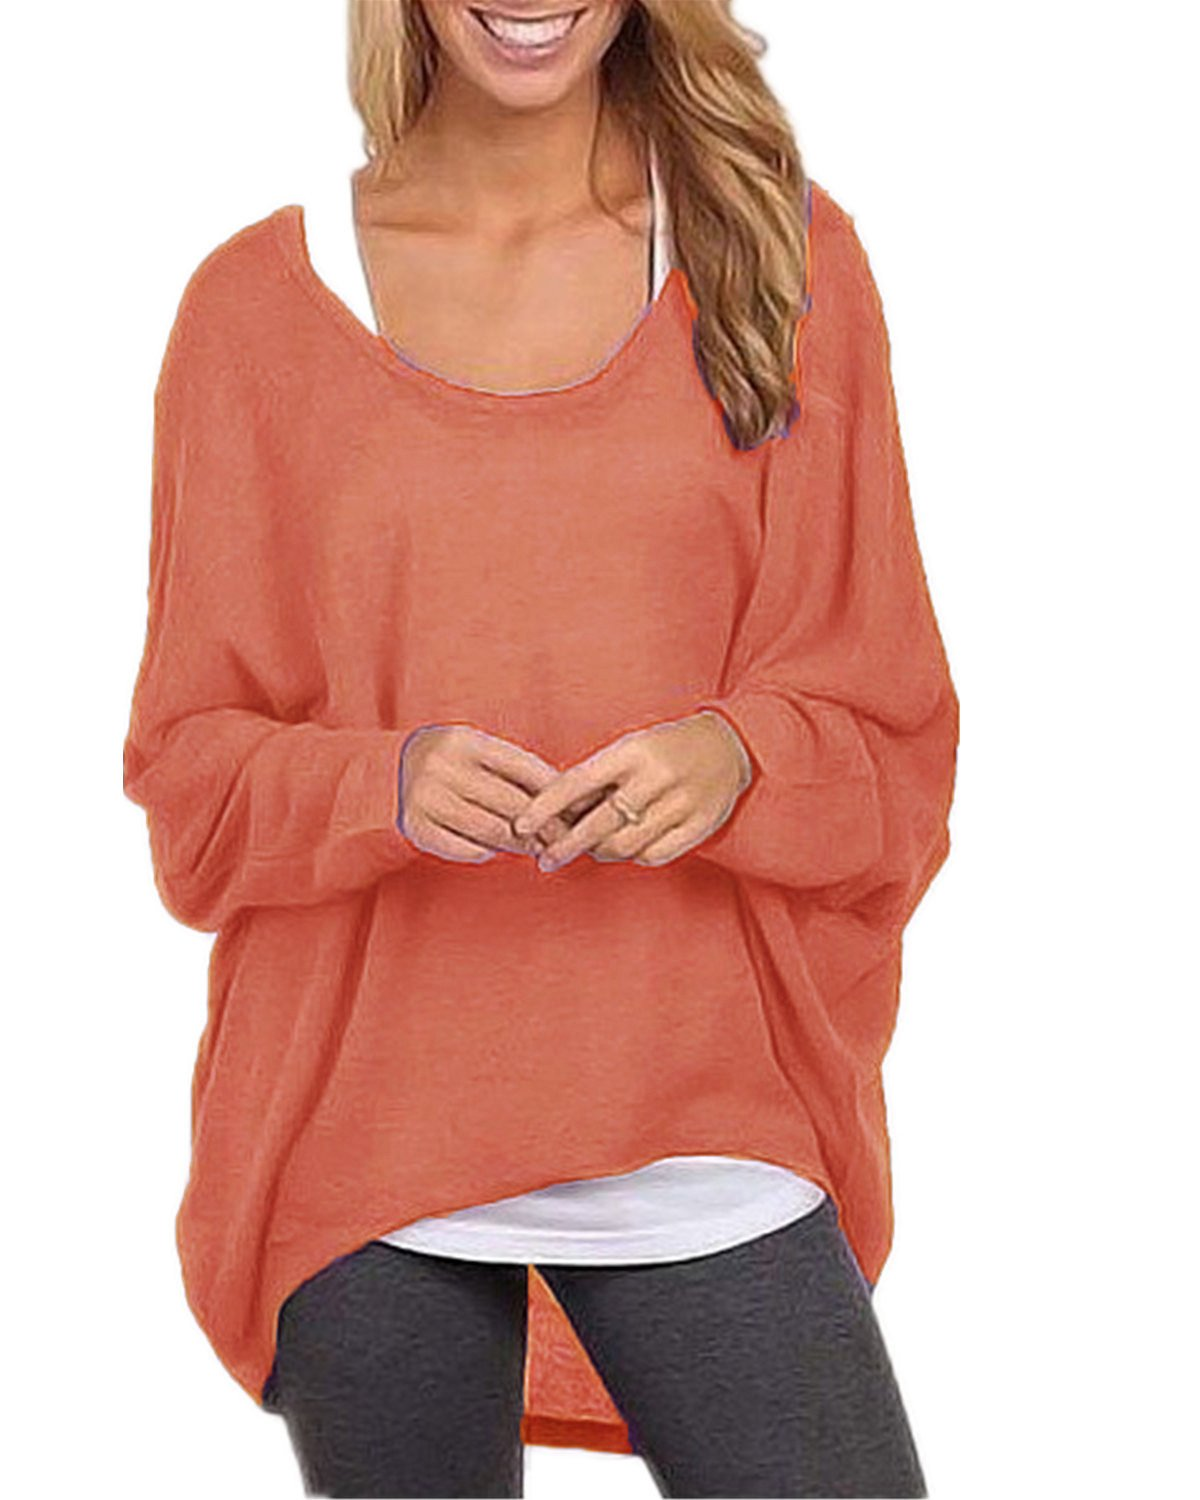 ZANZEA Women's Long Batwing Sleeve Loose Oversize Pullover Sweater Top Blouse Orange US 8/Tag Size M